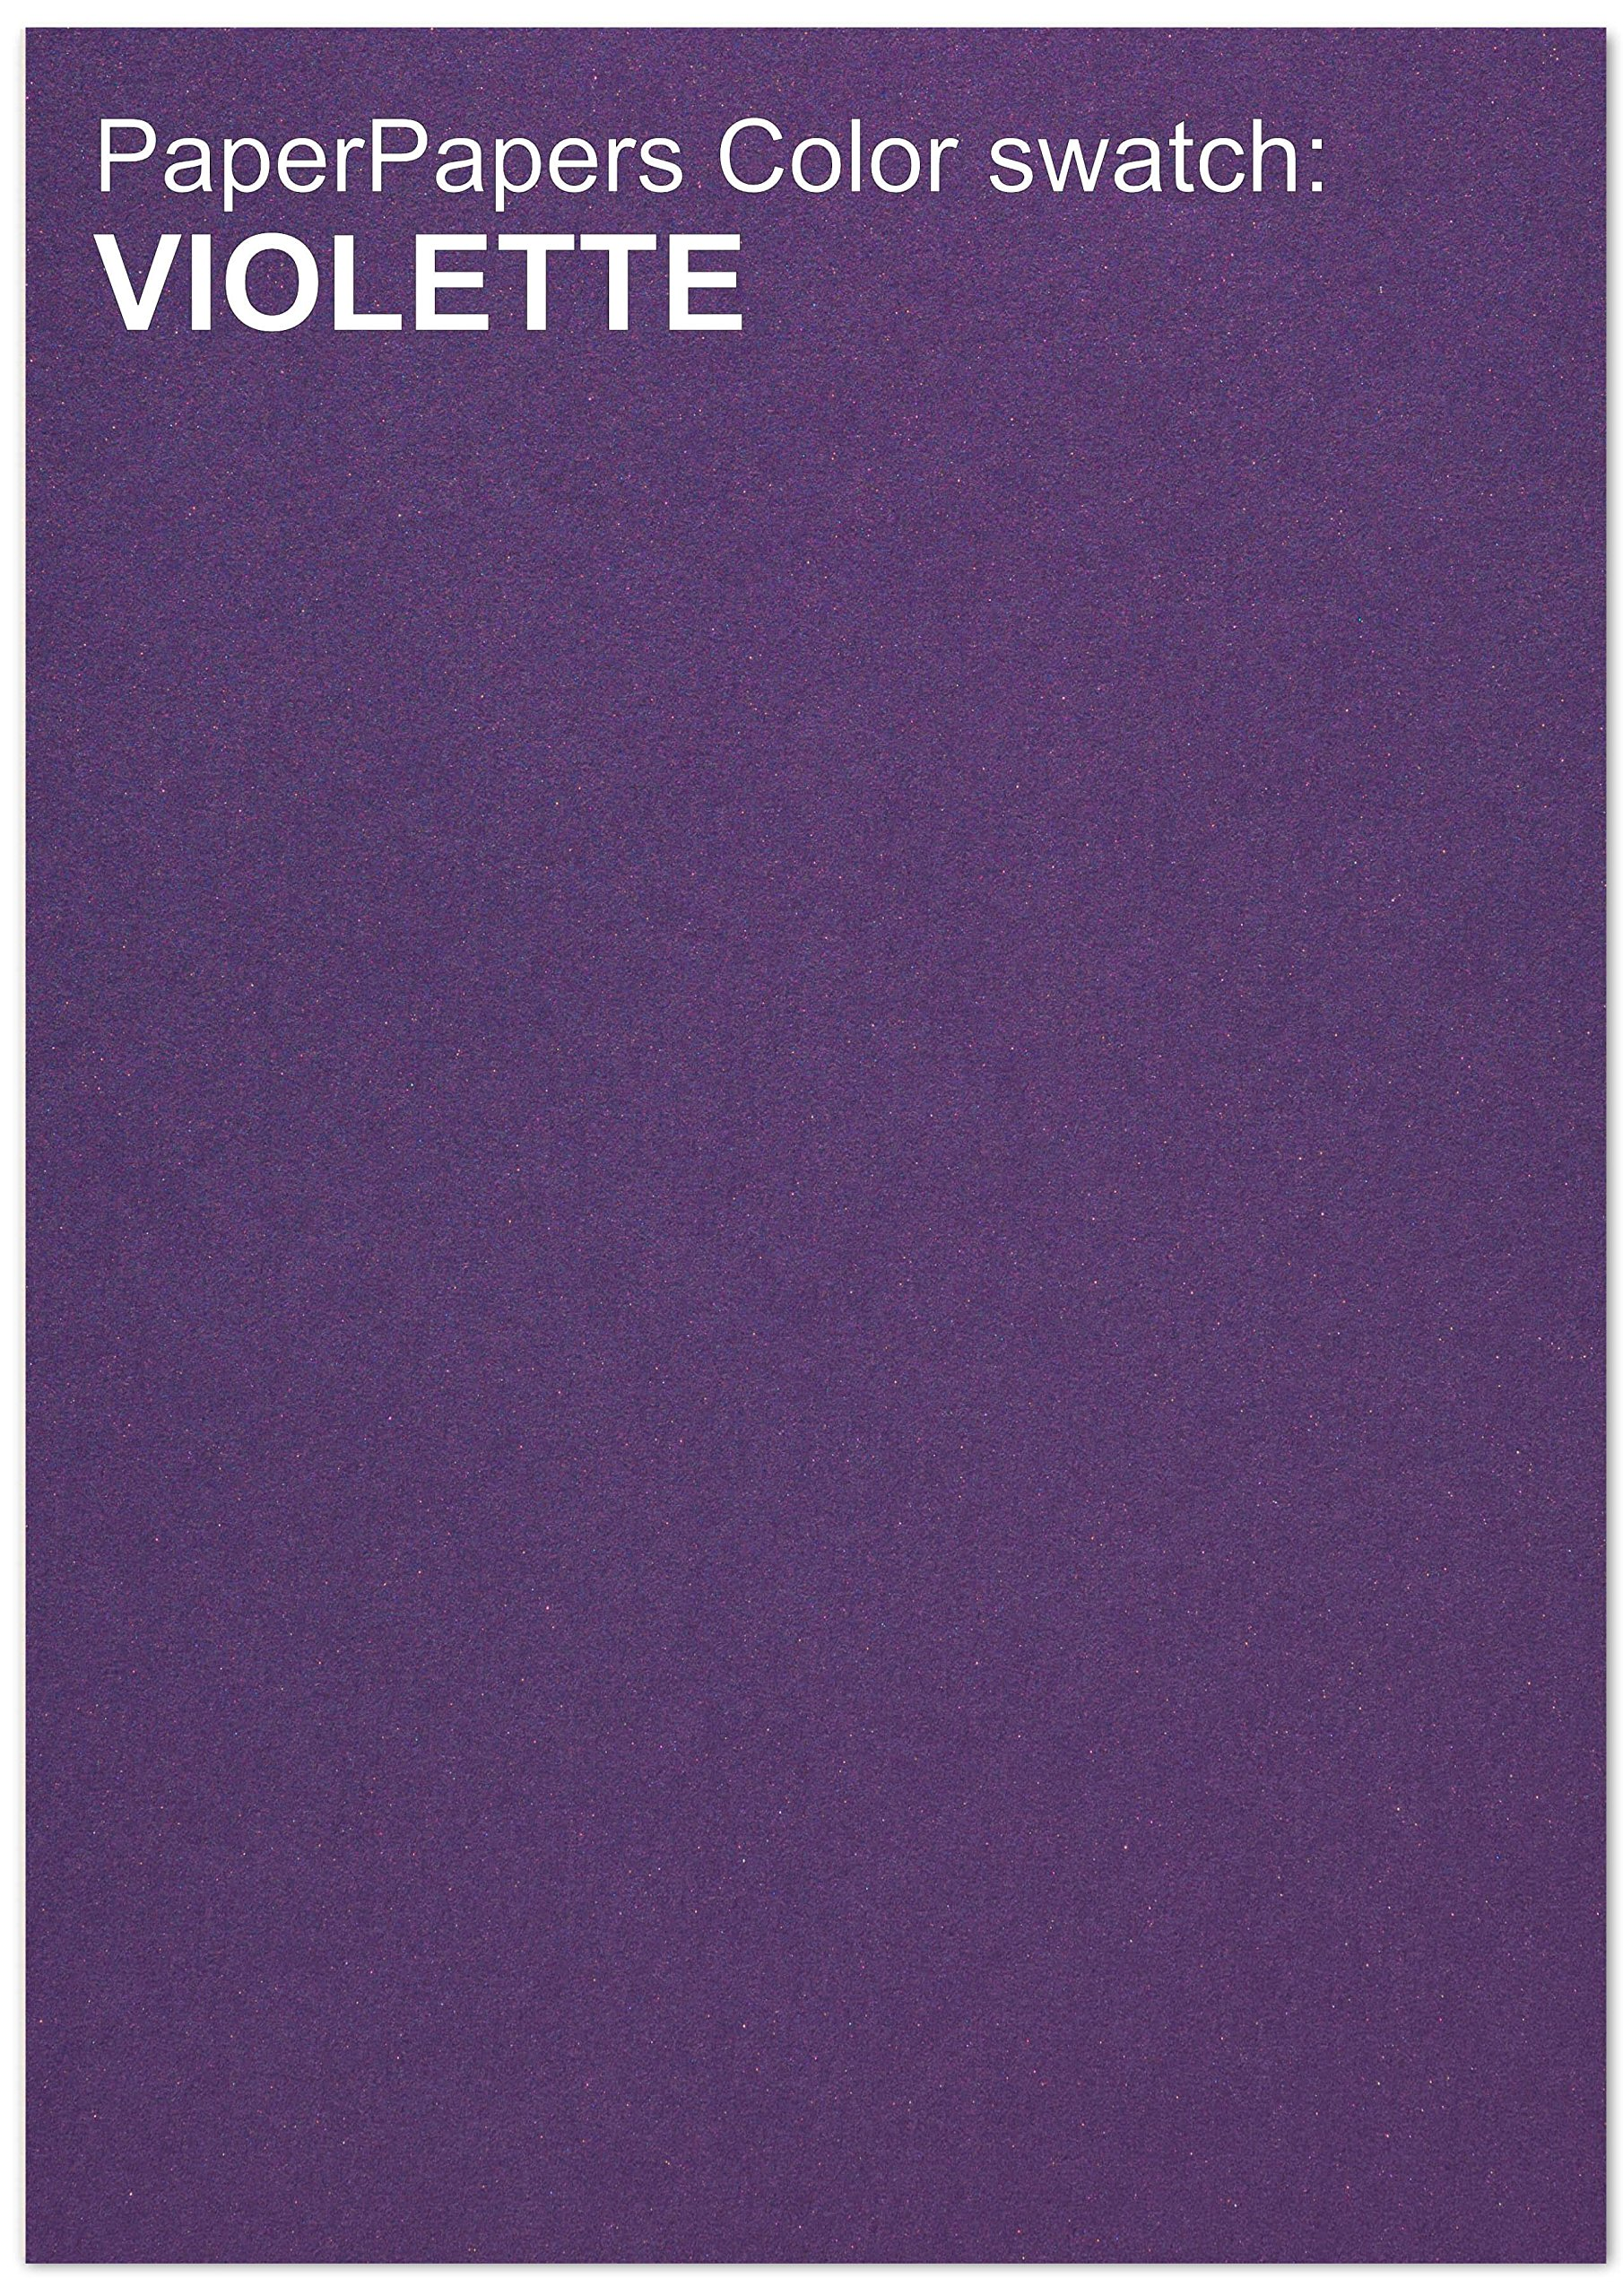 Curious Metallic - VIOLETTE Paper - 32T Multipurpose Paper - 12 x 18 - 200 PK by Paper Papers